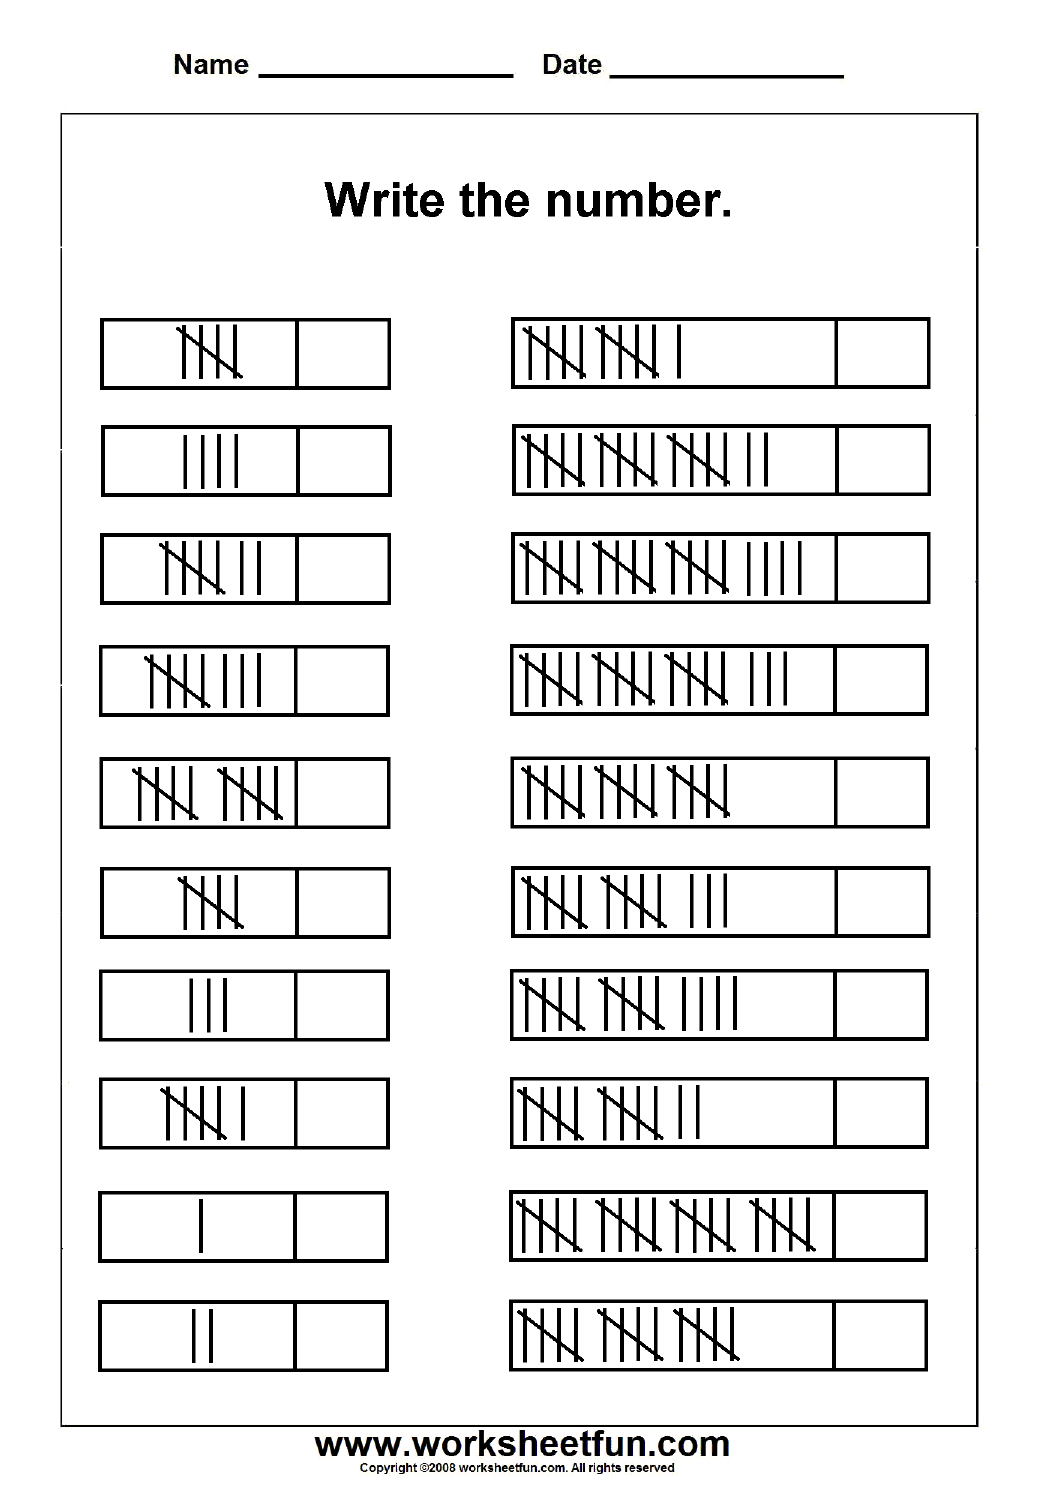 worksheet Neighborhood Worksheets For Kindergarten workbooks neighborhood worksheets for kindergarten free tally marks 1 worksheet teaching pinterest